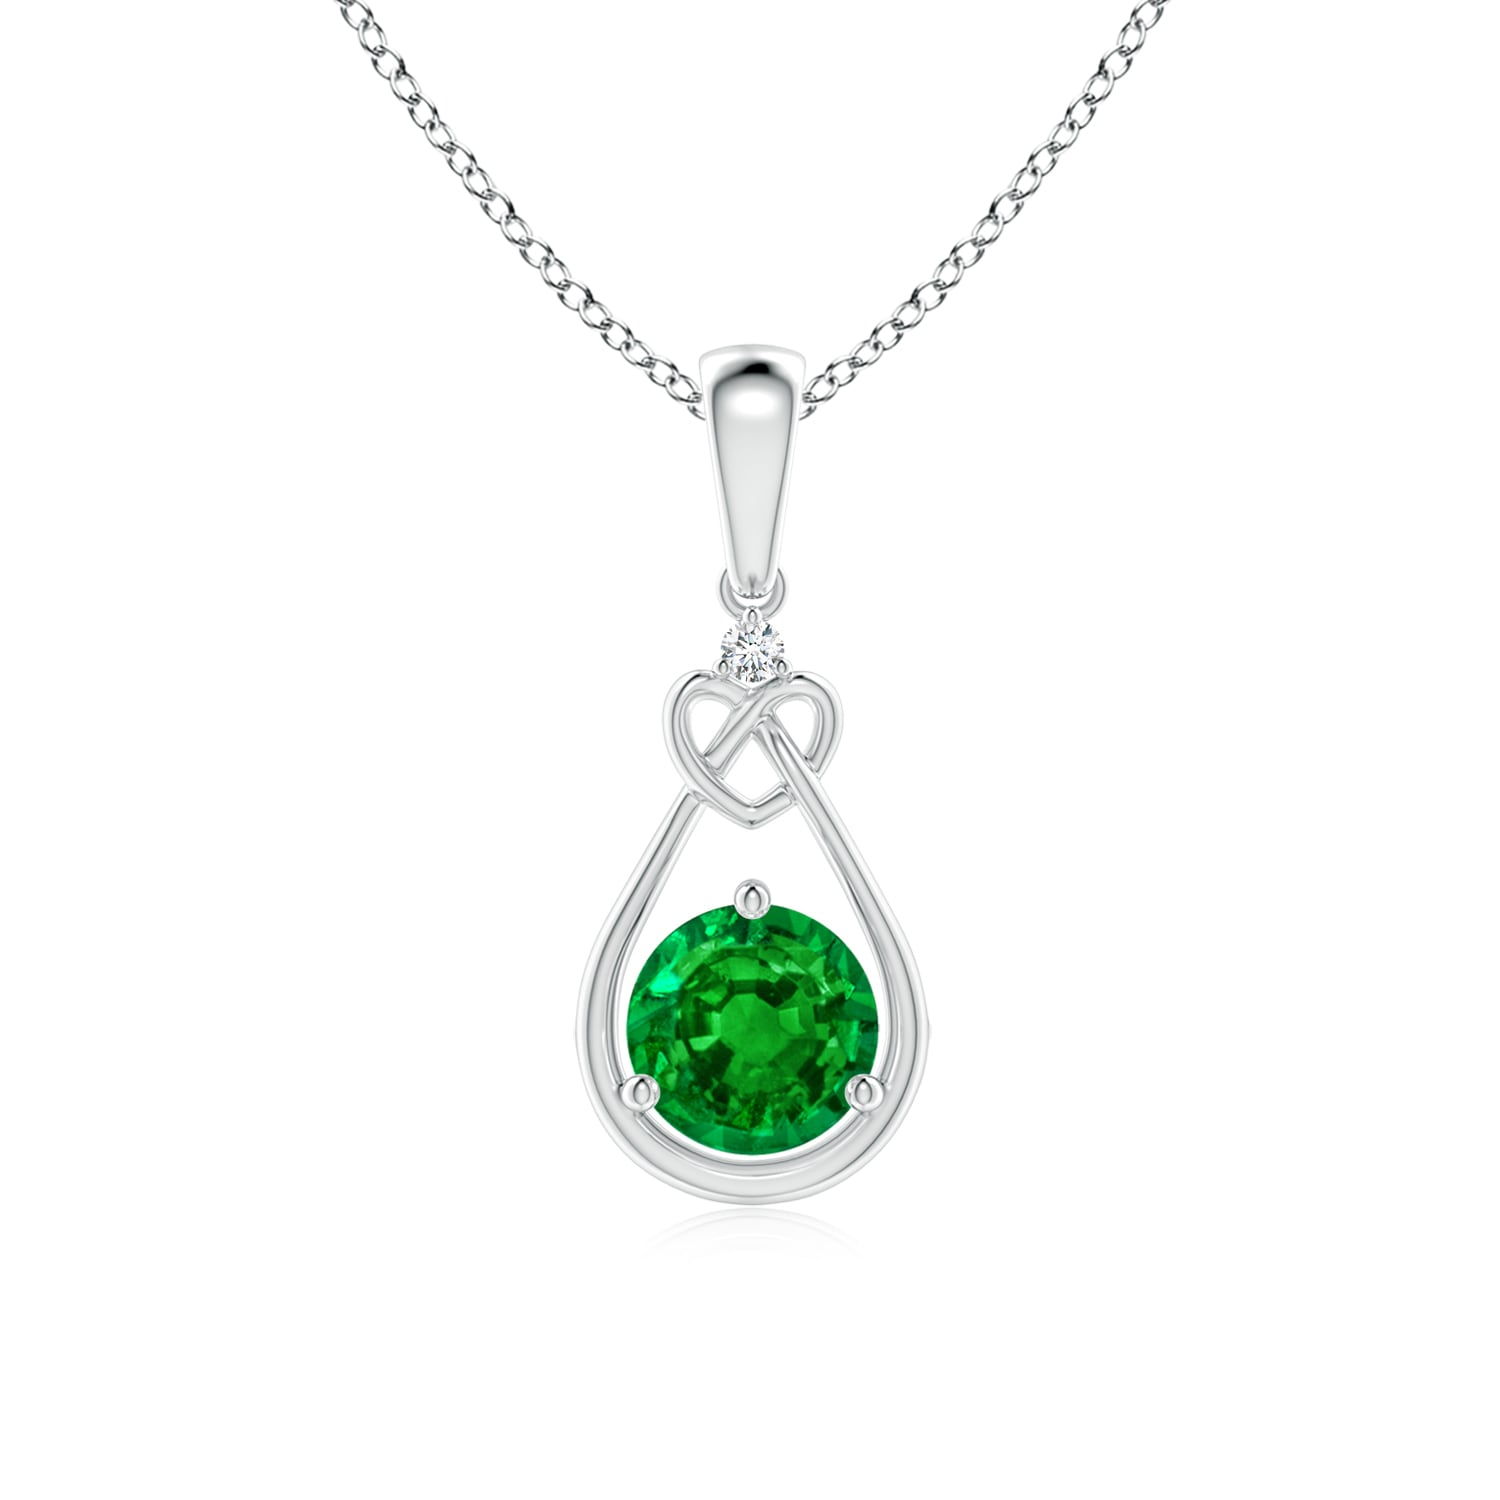 Emerald Knotted Heart Pendant With Diamond In Most Recent Knotted Heart Pendant Necklaces (View 6 of 25)